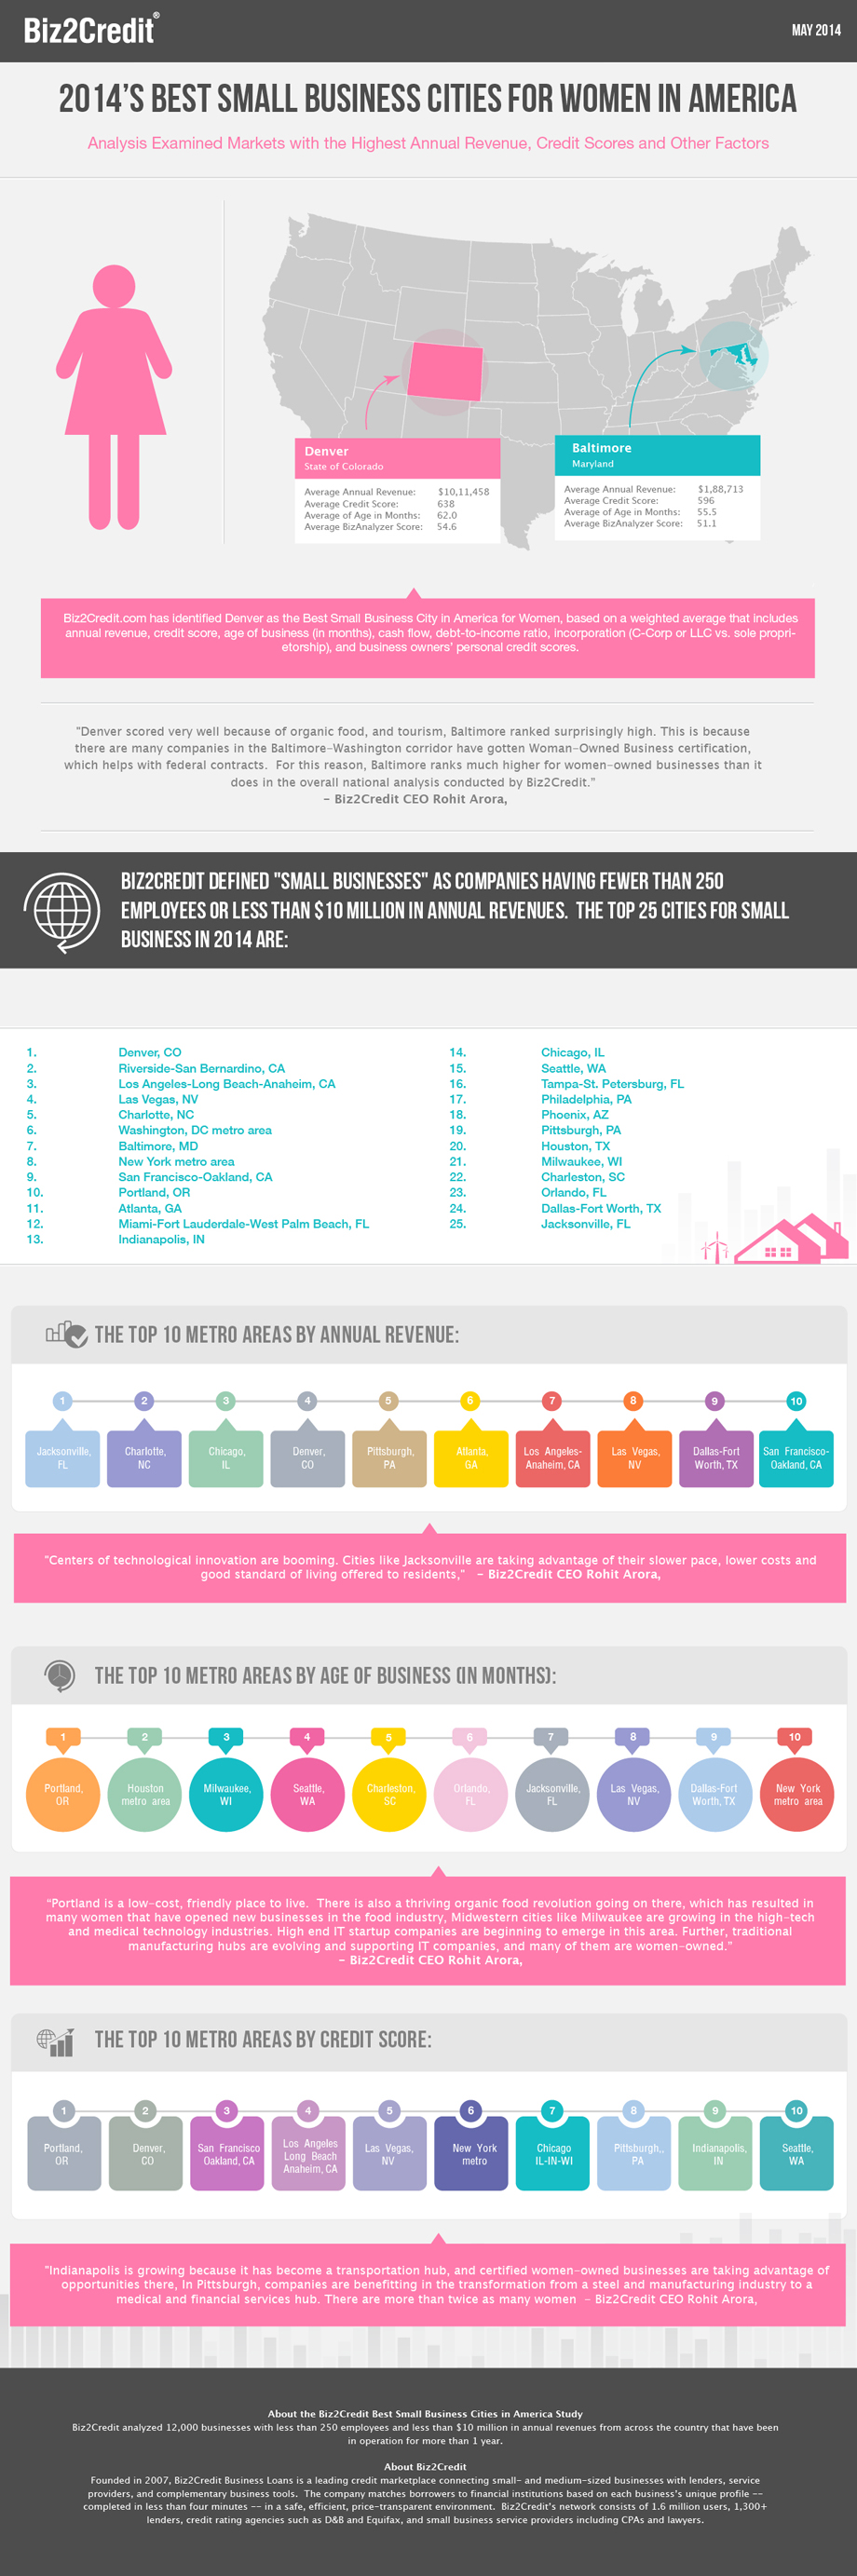 Best Small Business Cities for Women USA 2014